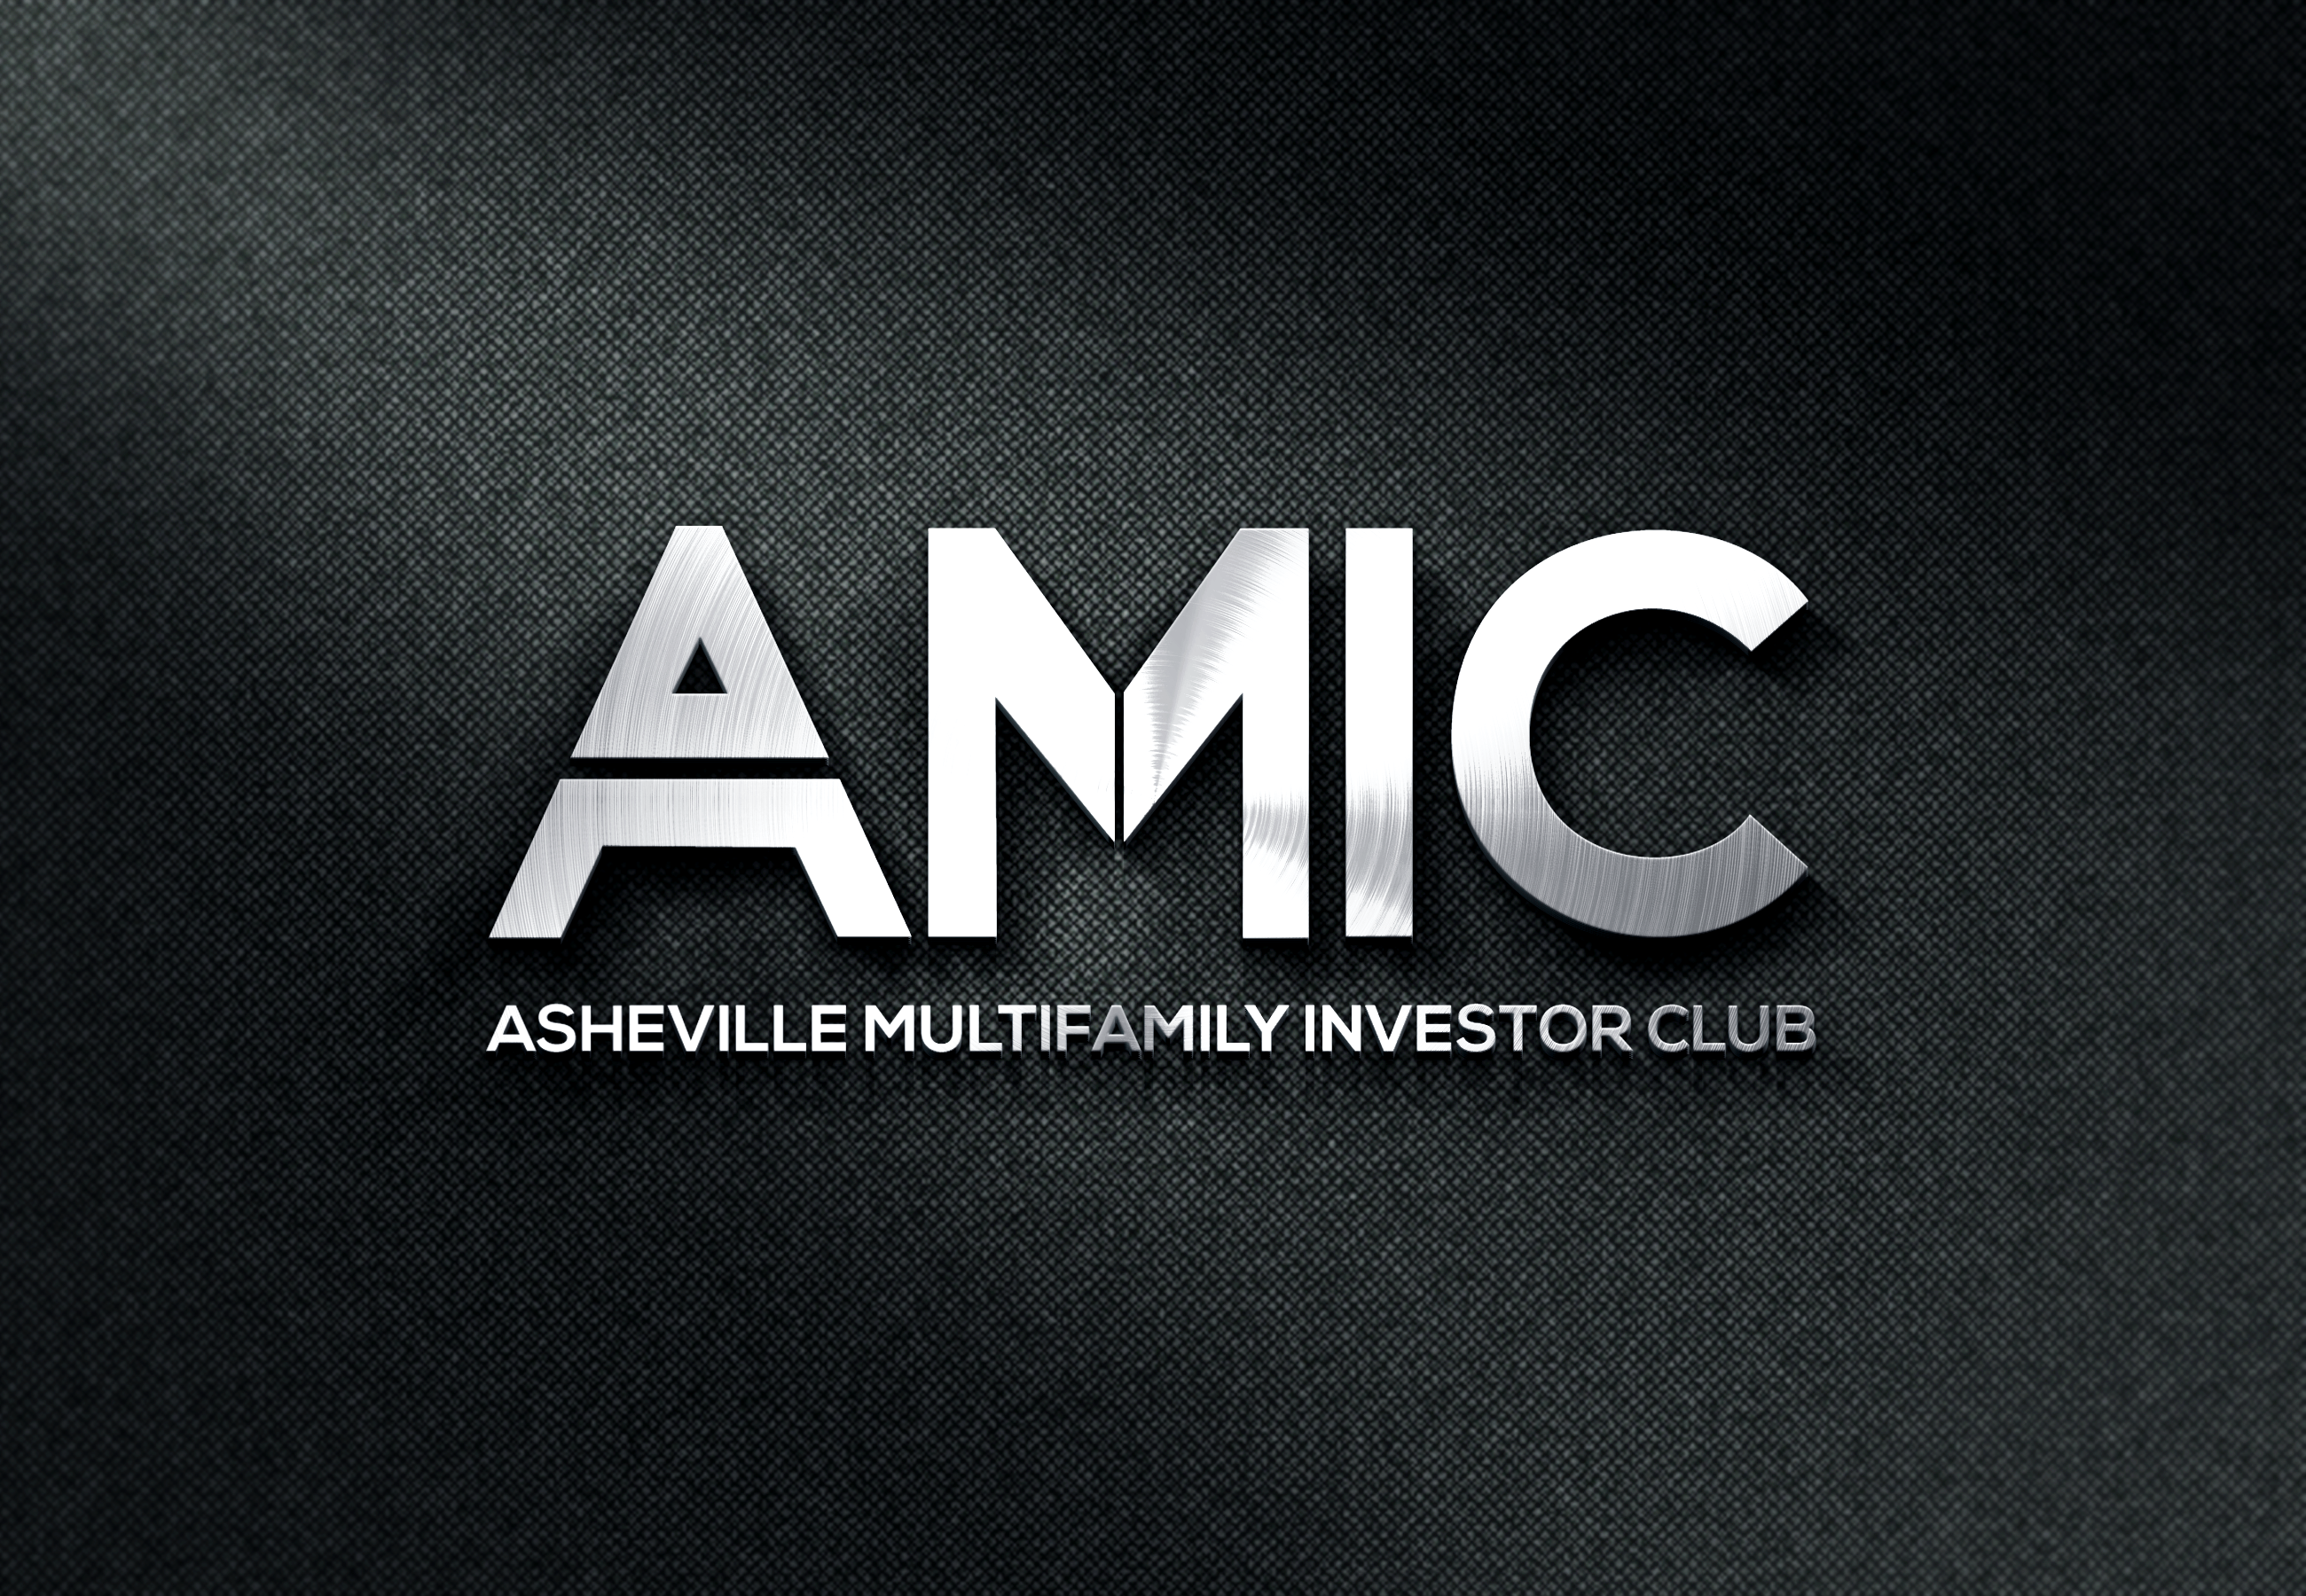 Asheville Multifamily Investor Club